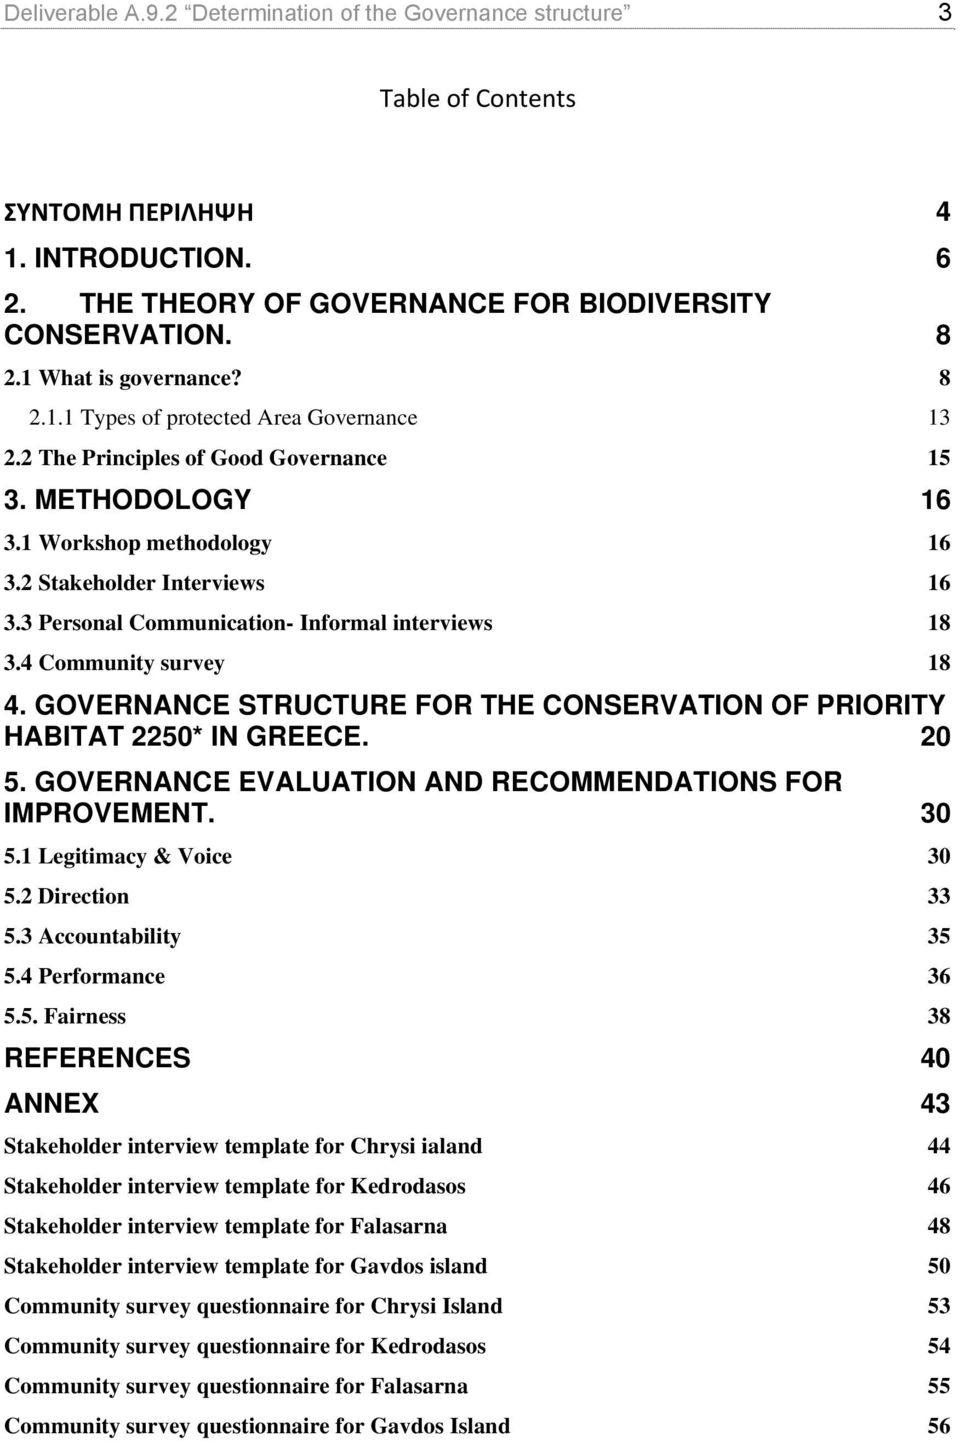 3 Personal Communication- Informal interviews 18 3.4 Community survey 18 4. GOVERNANCE STRUCTURE FOR THE CONSERVATION OF PRIORITY HABITAT 2250* IN GREECE. 20 5.